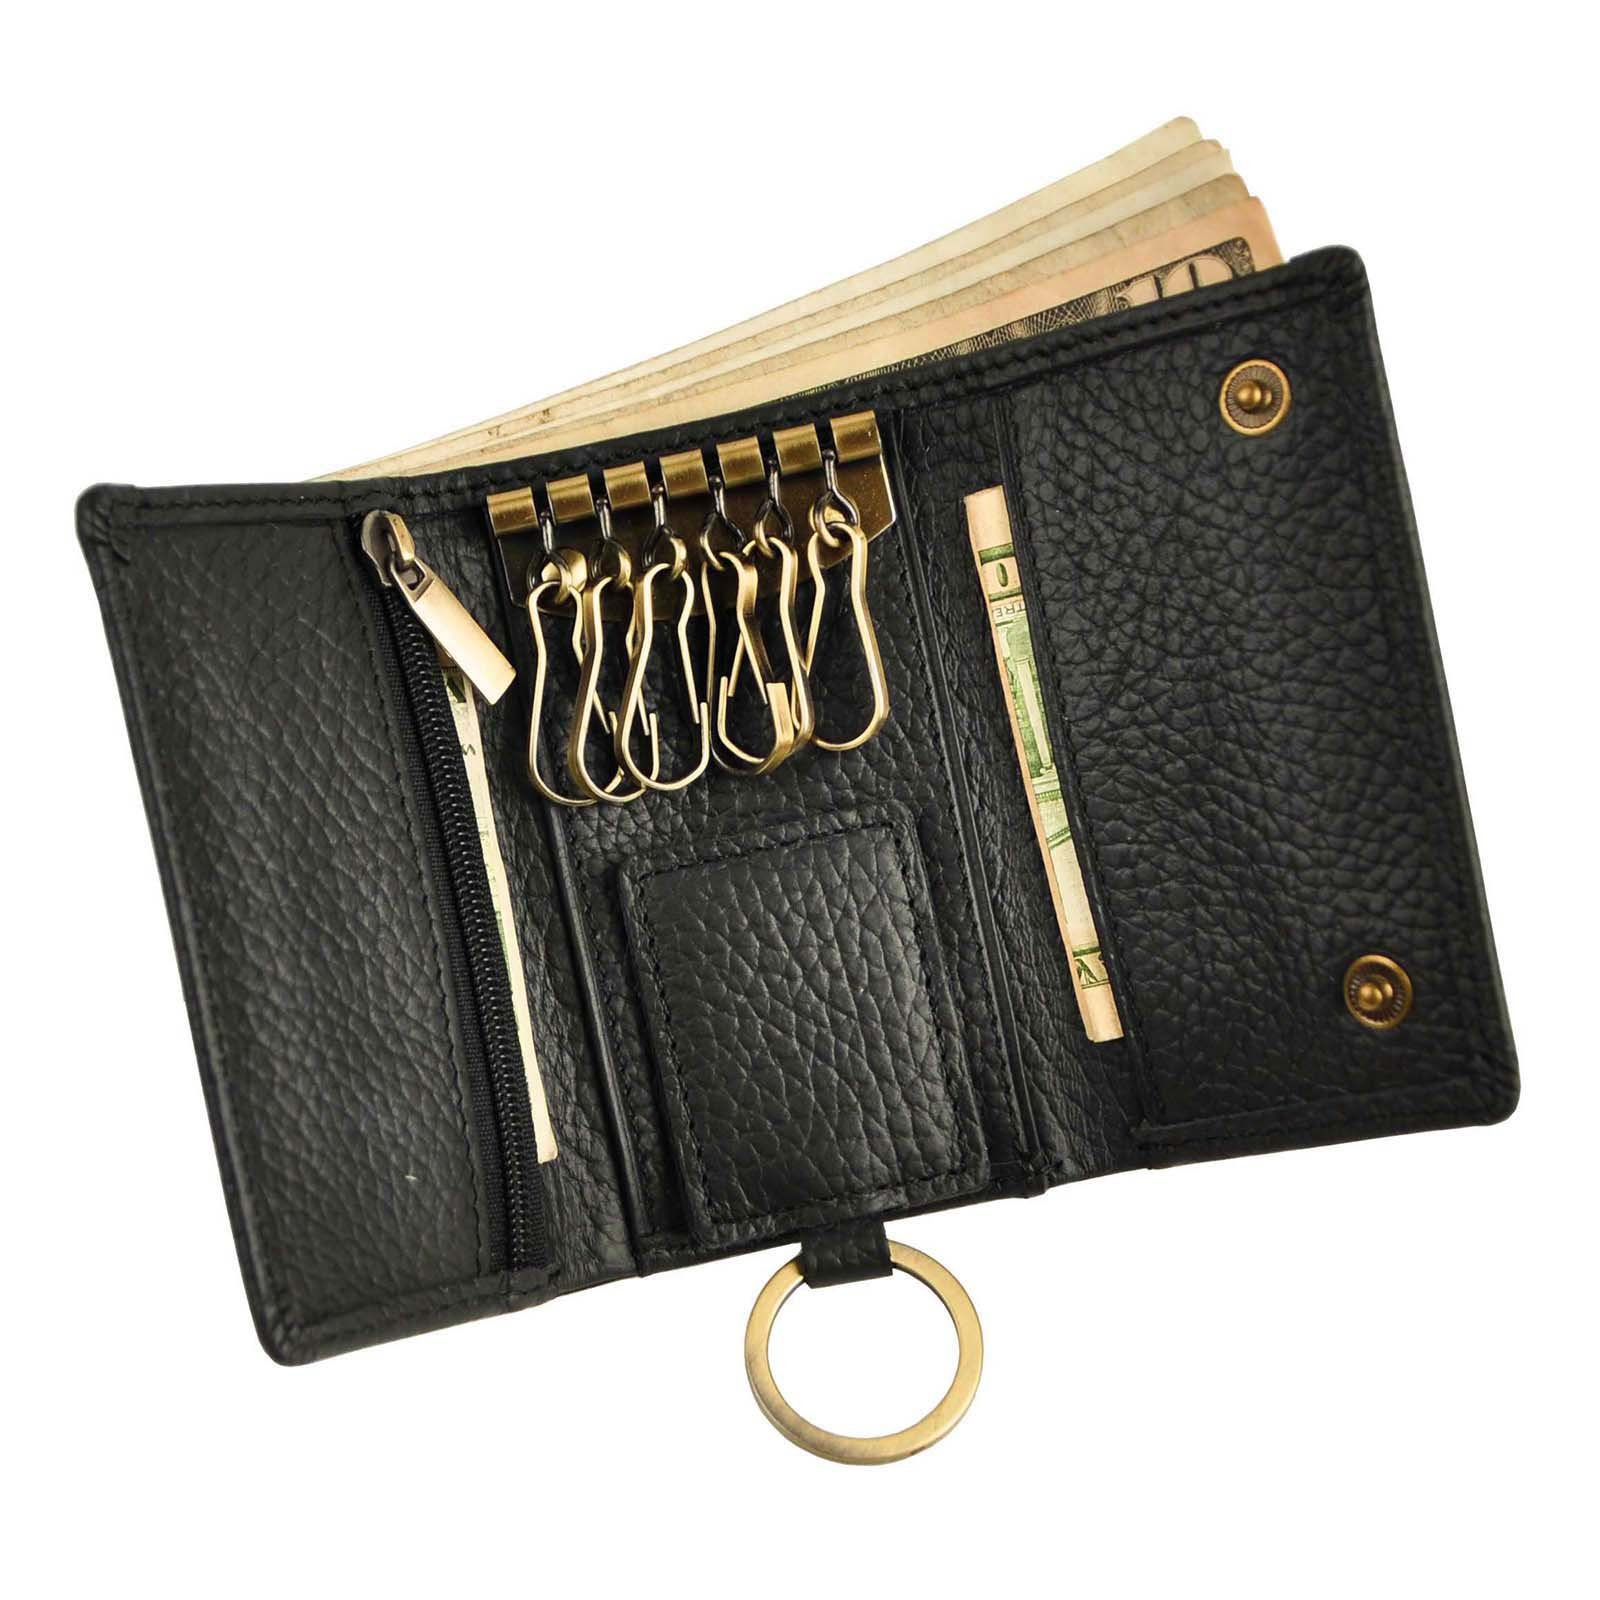 Le'aokuu Mens Genuine Leather Car Key Case Loop Hook Coin Case Cover Wallet Snap (The Black 2)